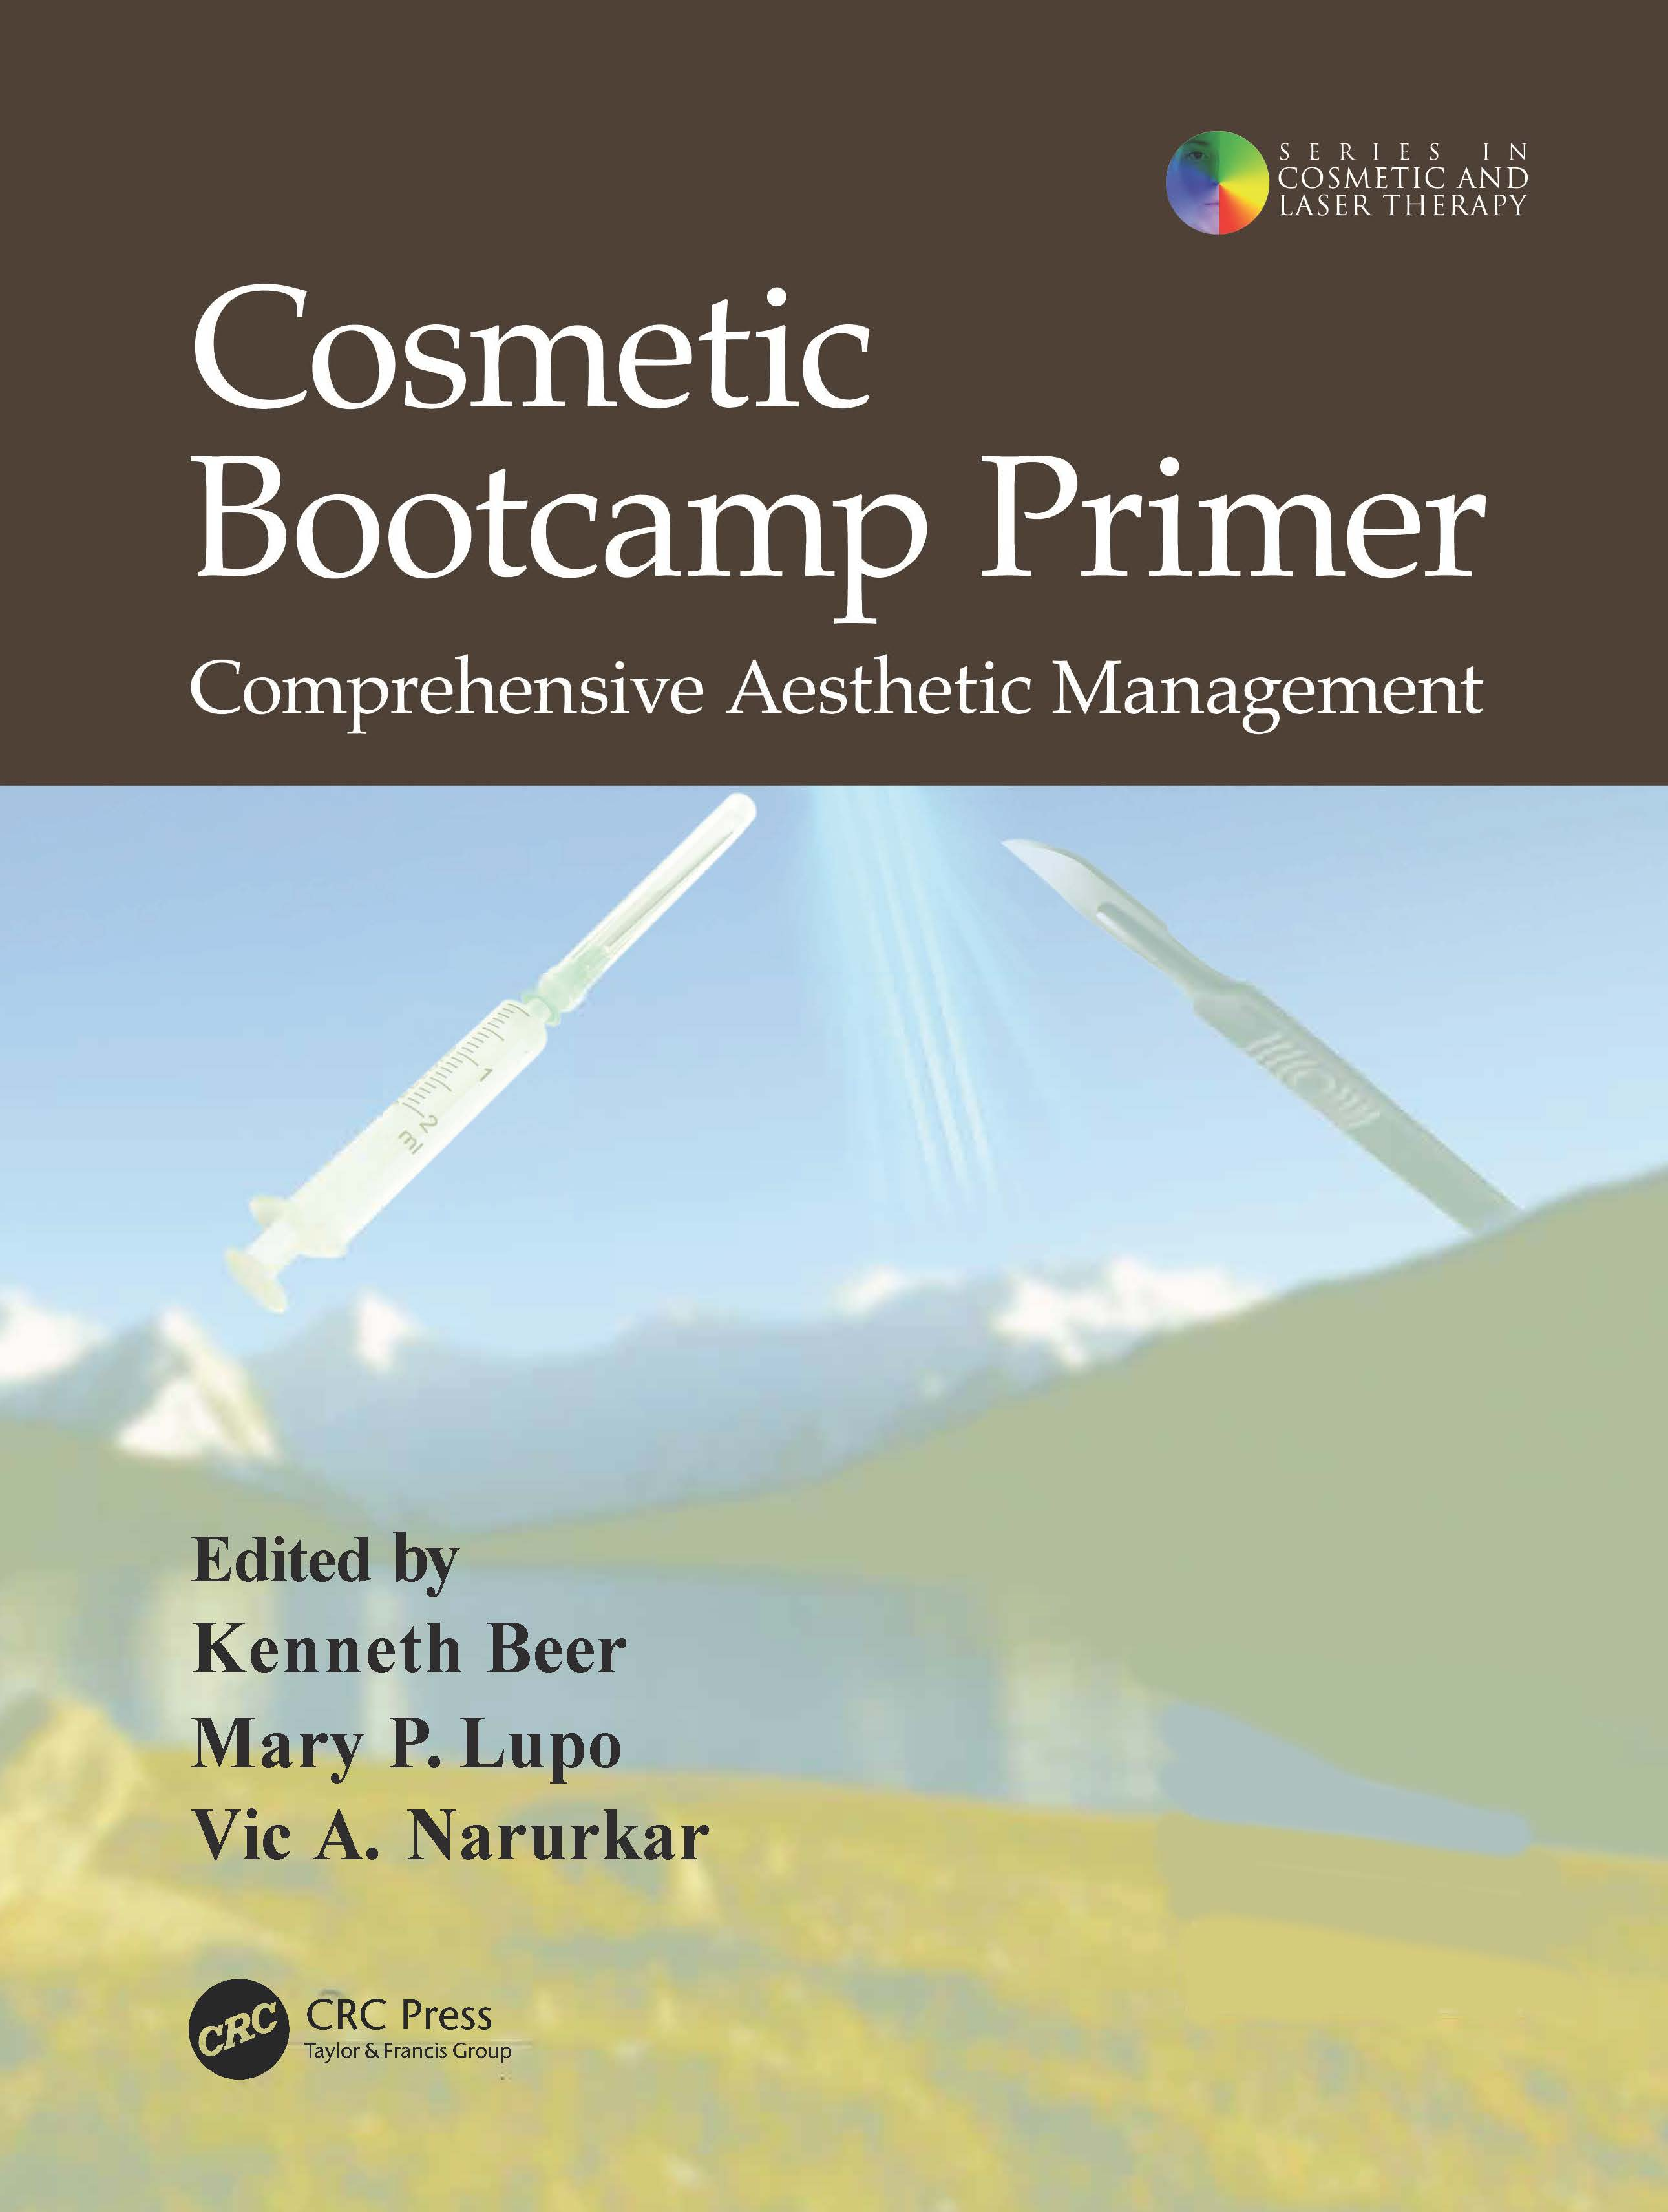 Cosmetic Bootcamp Primer: Comprehensive Aesthetic Management book cover